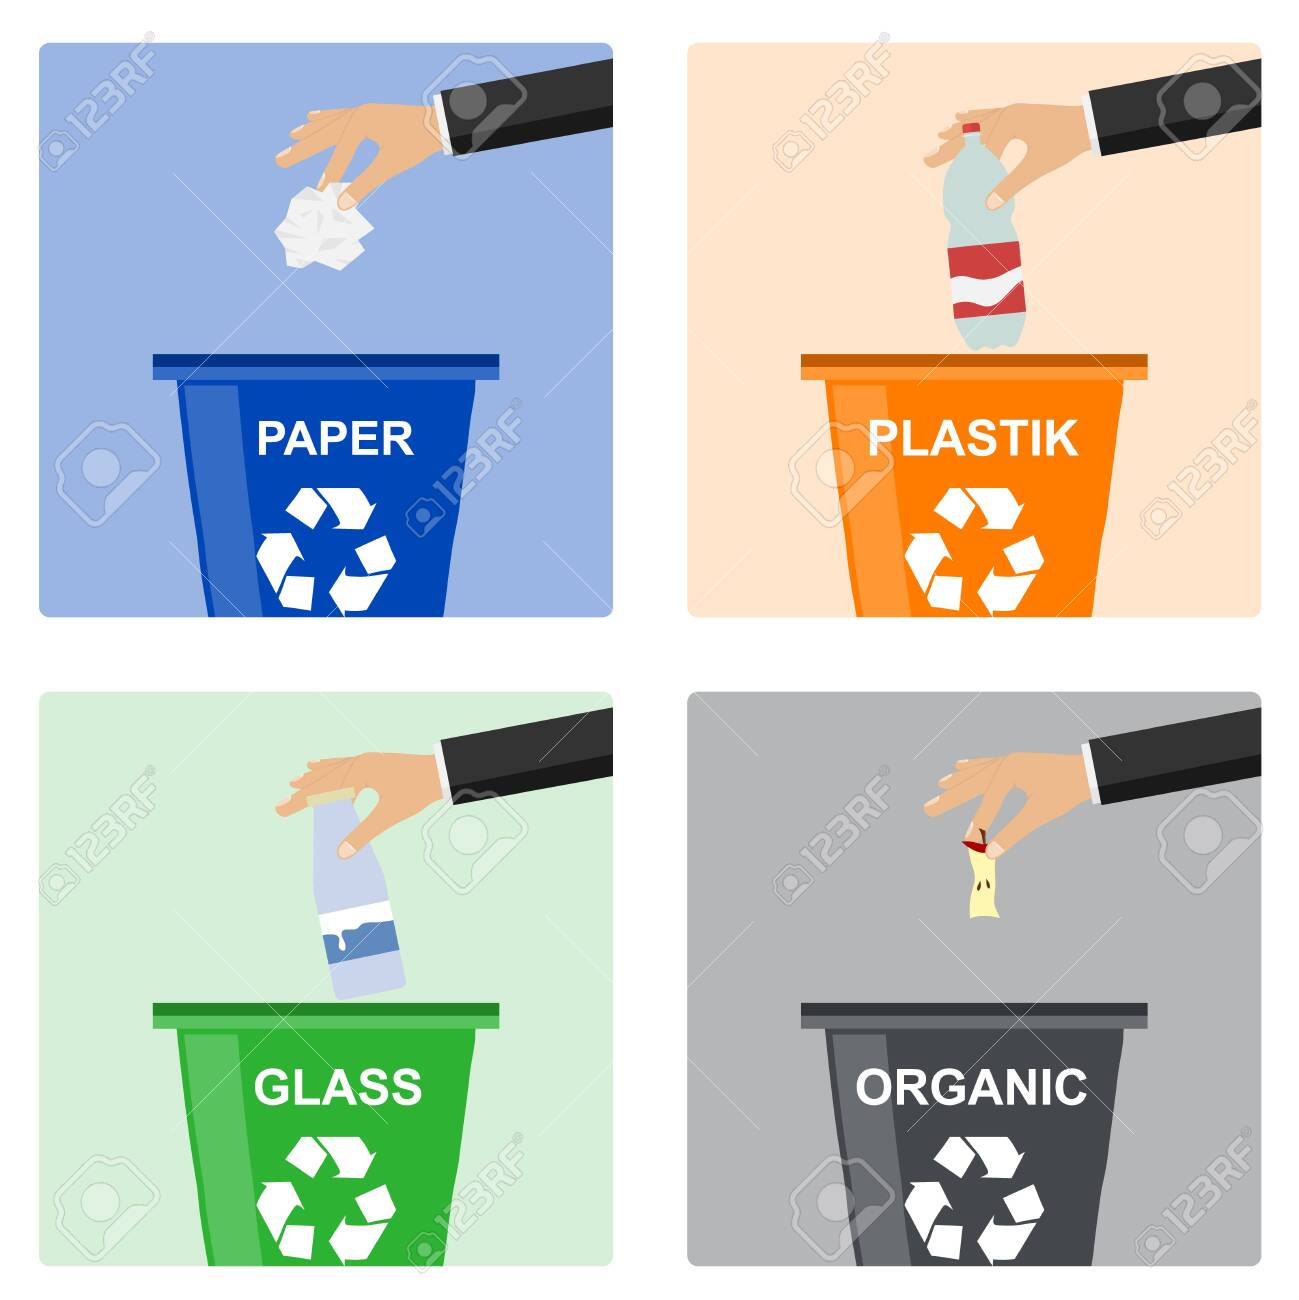 Man hand throws garbage into a plastic container. Hand of man throwing garbage into organic container. Concept of garbage processing. - 122402645